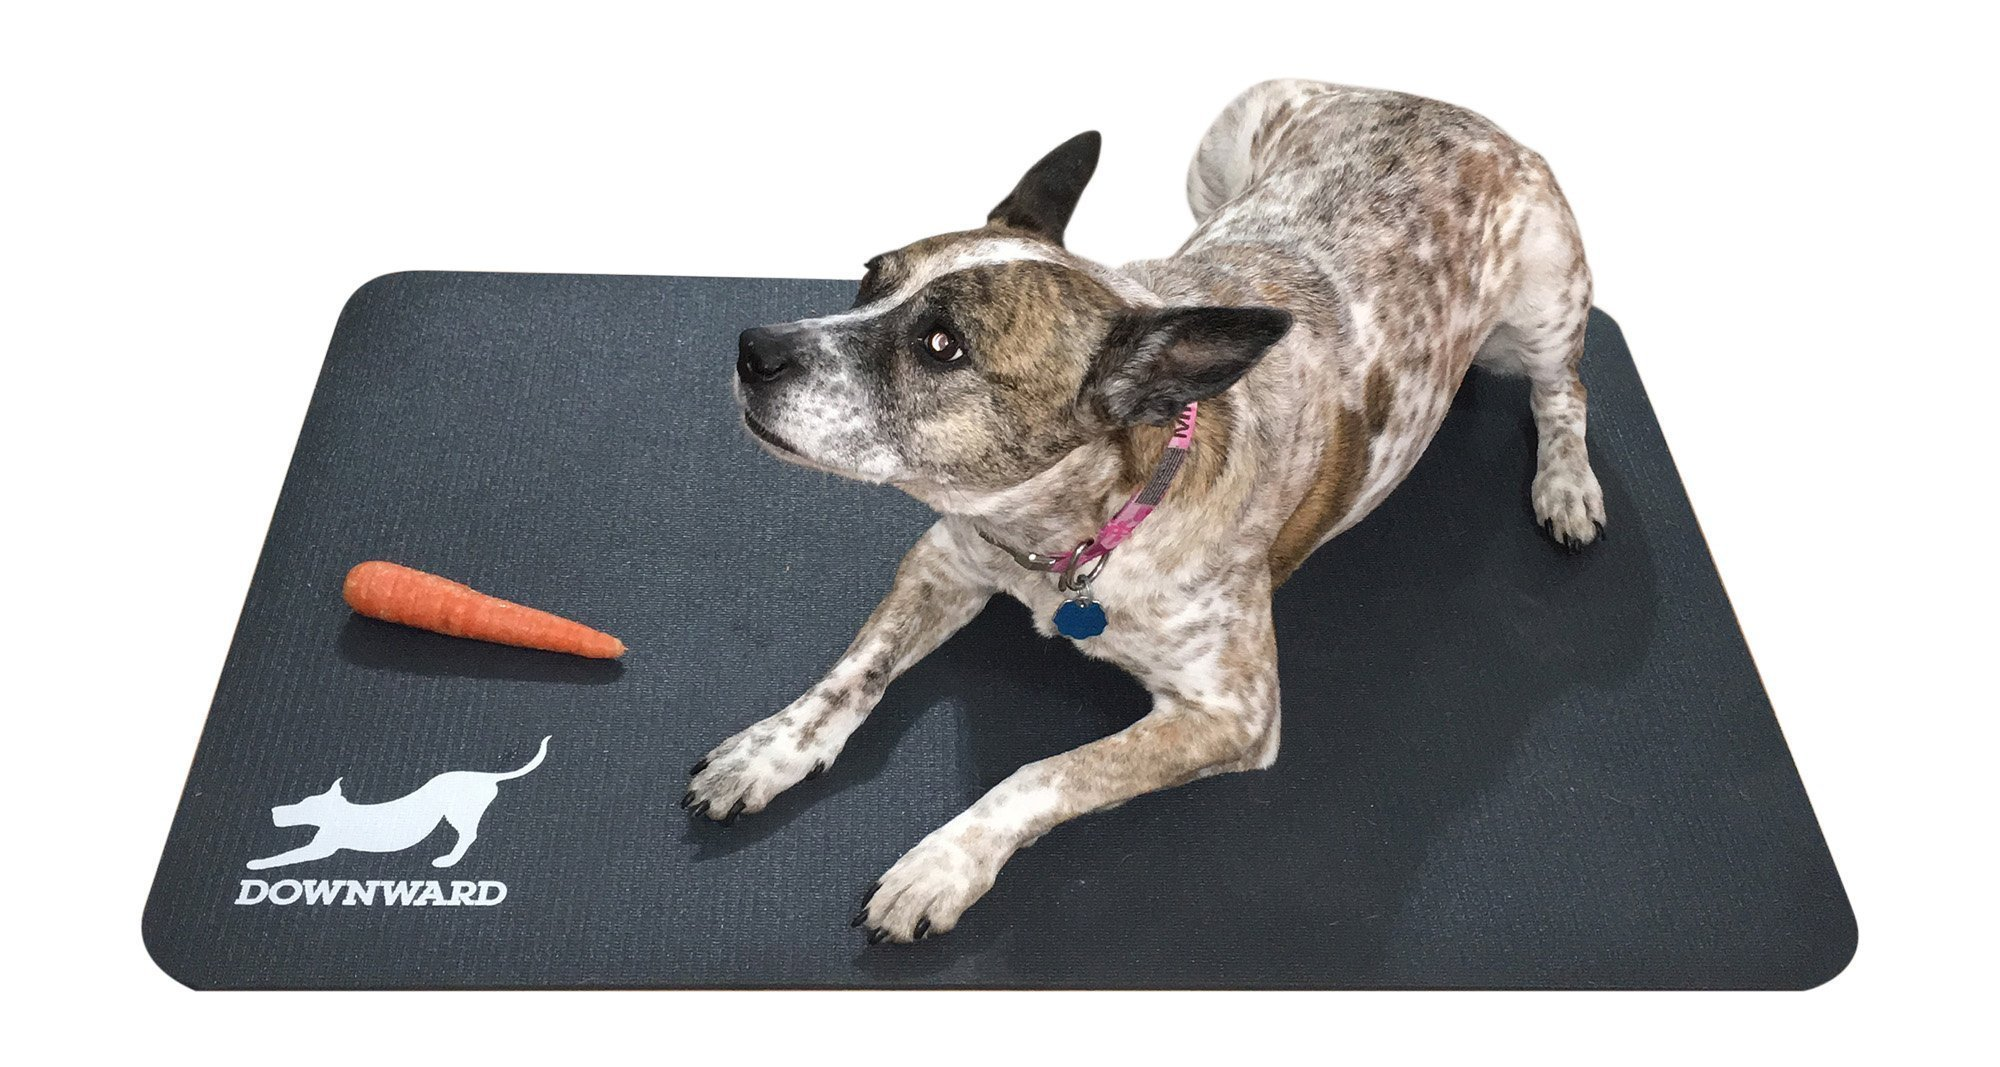 Downward Dog Mat (Large) - Hypo-Allergenic Slip-Resistant Waterproof Rugged High-Density Rubber Cushioning